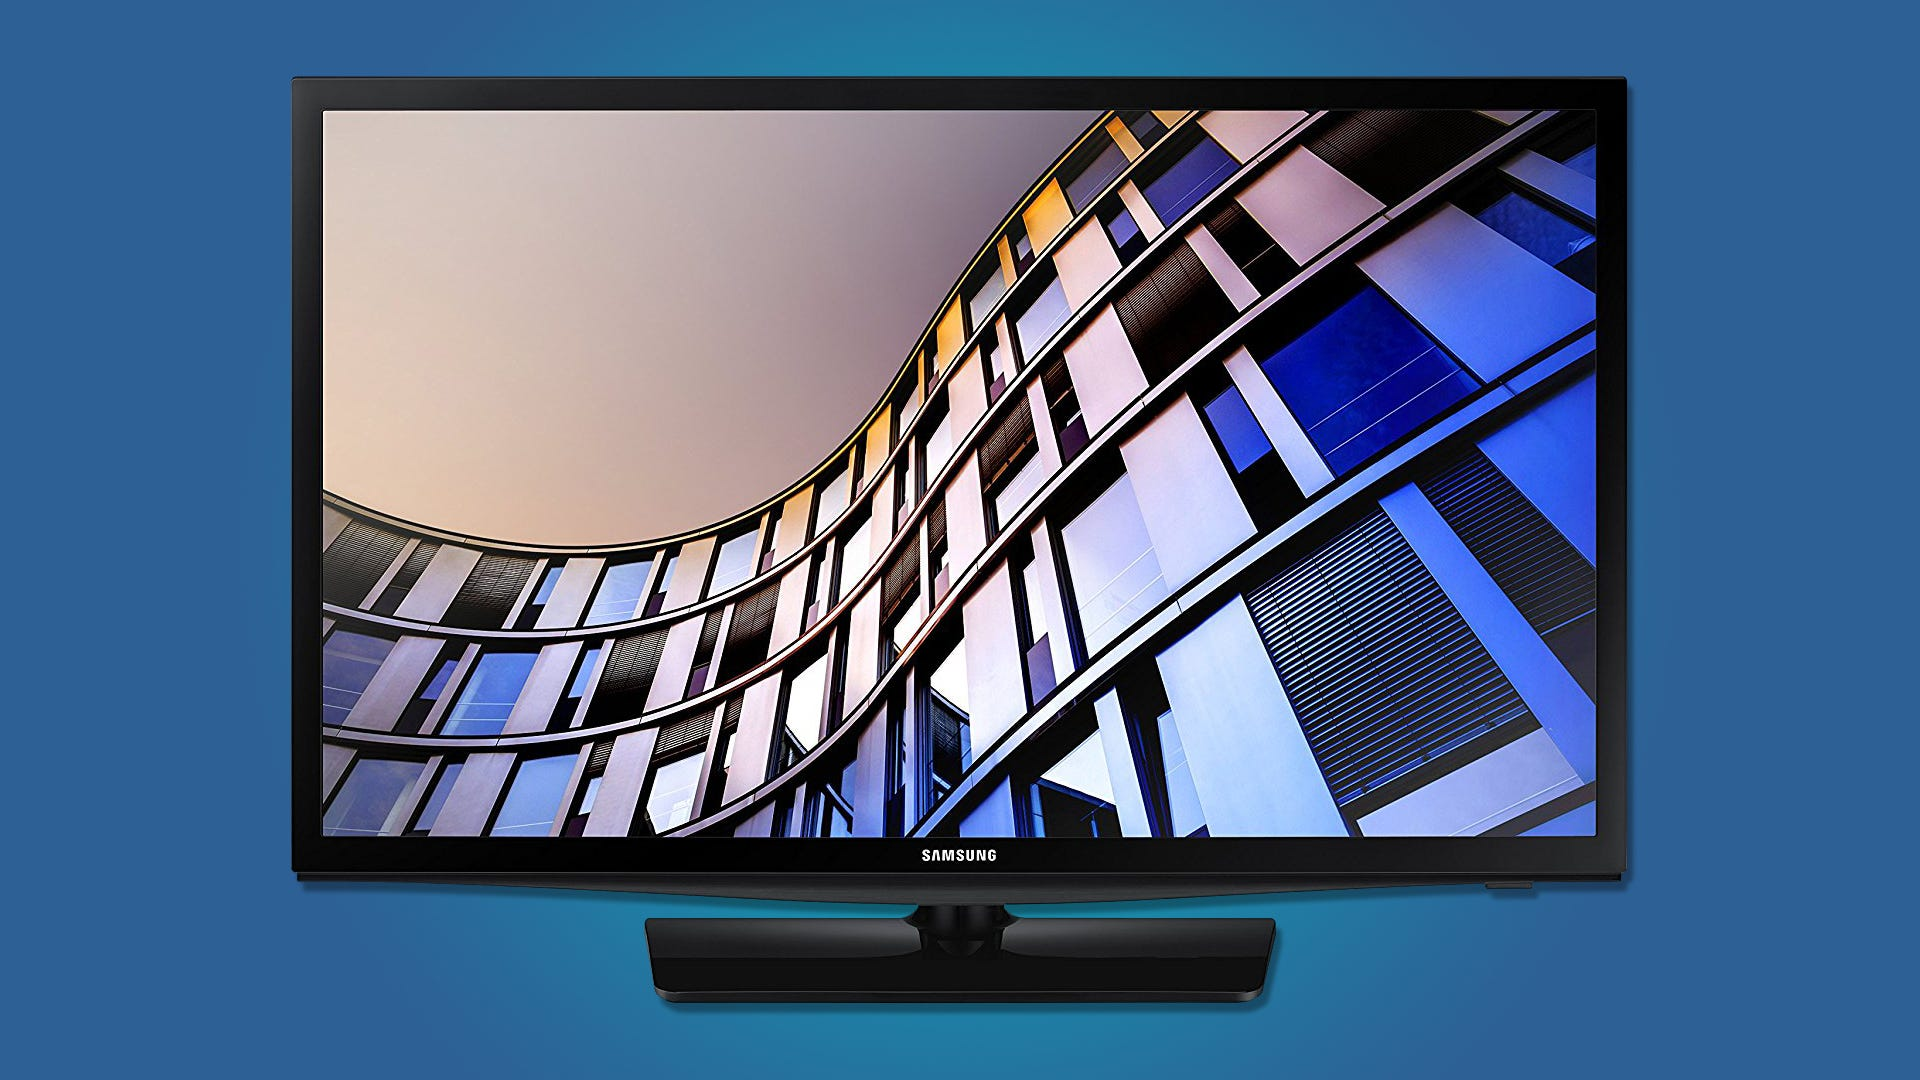 Generally, You Canu0027t Expect To Get A Good Picture Out Of A Cheap, Small TV.  That Doesnu0027t Mean We Canu0027t Try, Though. This Samsung 24u2033 TV (15.1u2033 Tall)  Has ...